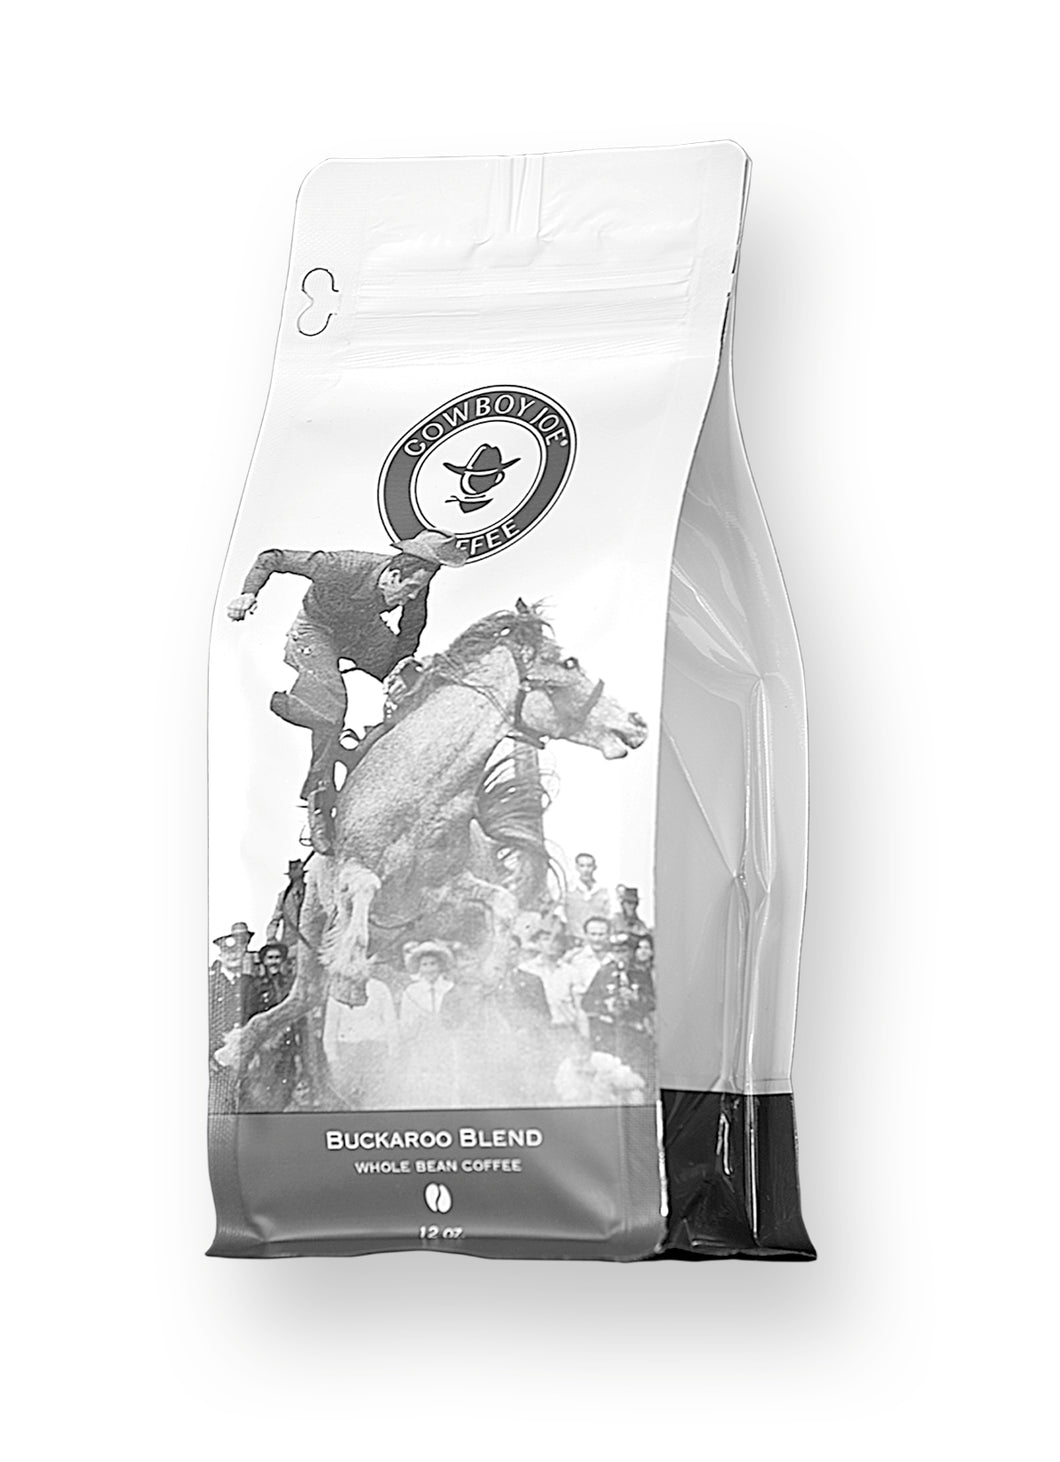 Buckaroo Blend 12oz. Whole Bean Coffee